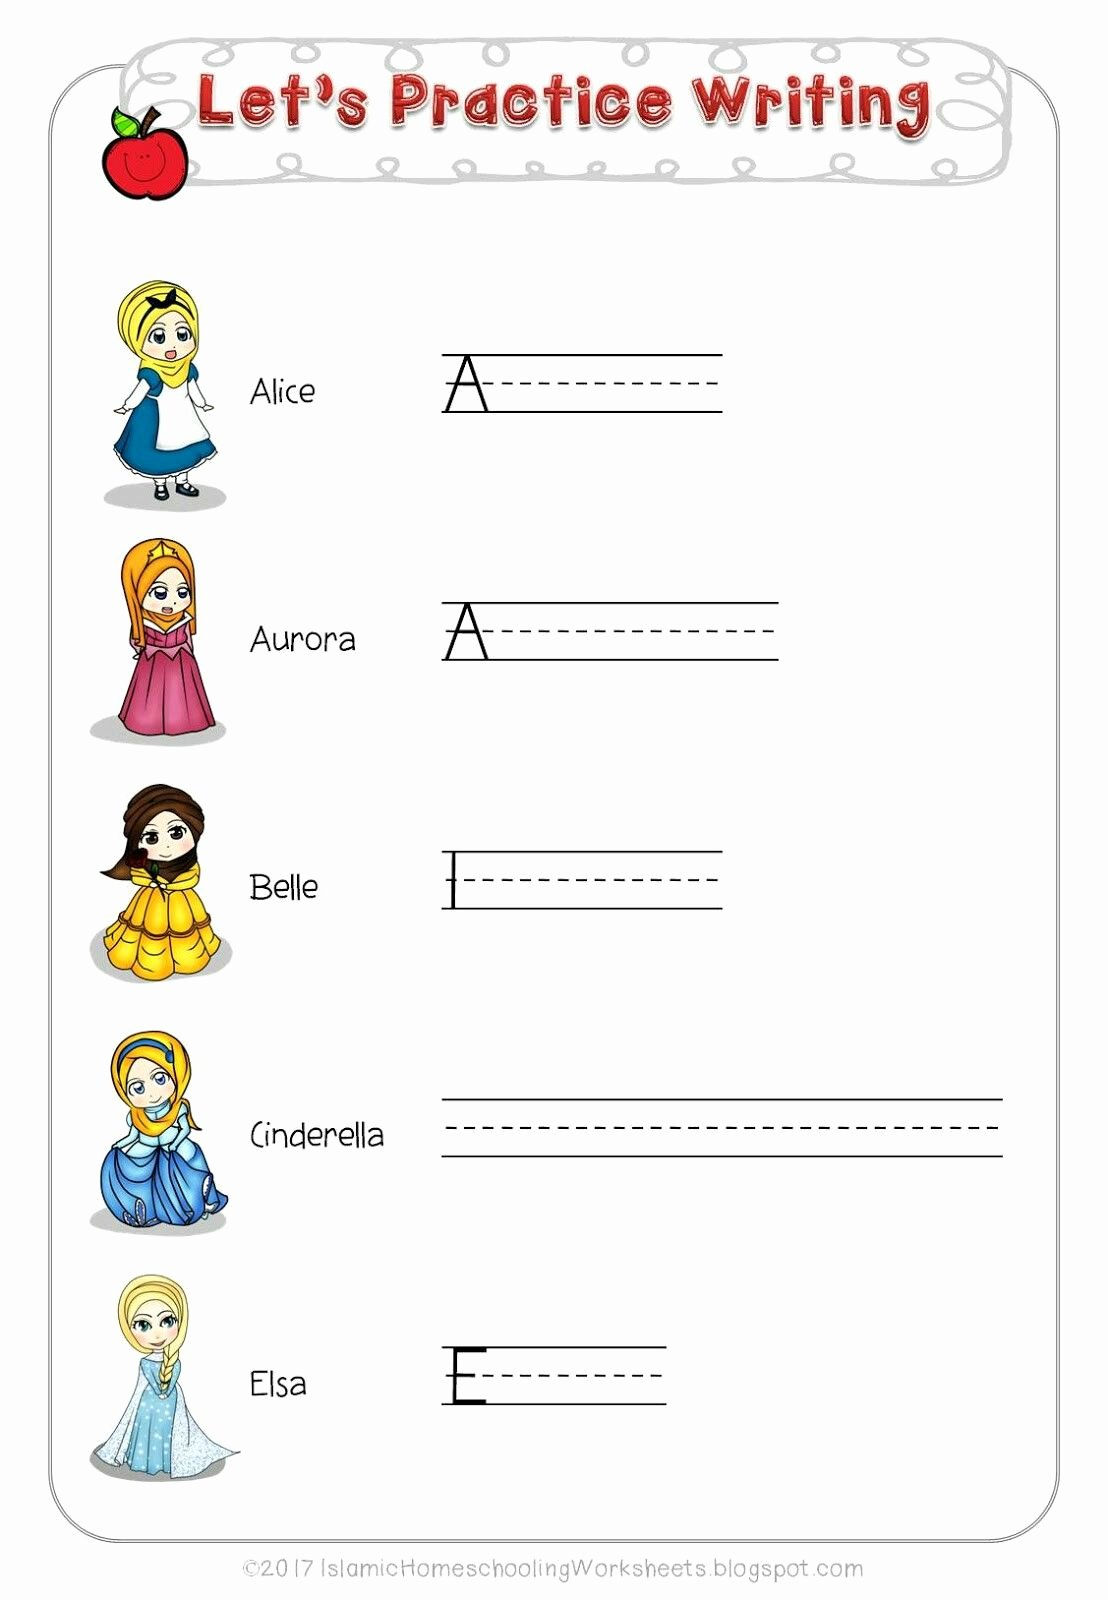 Free Disney Worksheets for Preschoolers Lovely Free Disney Princess Preschool Pack islamic Version